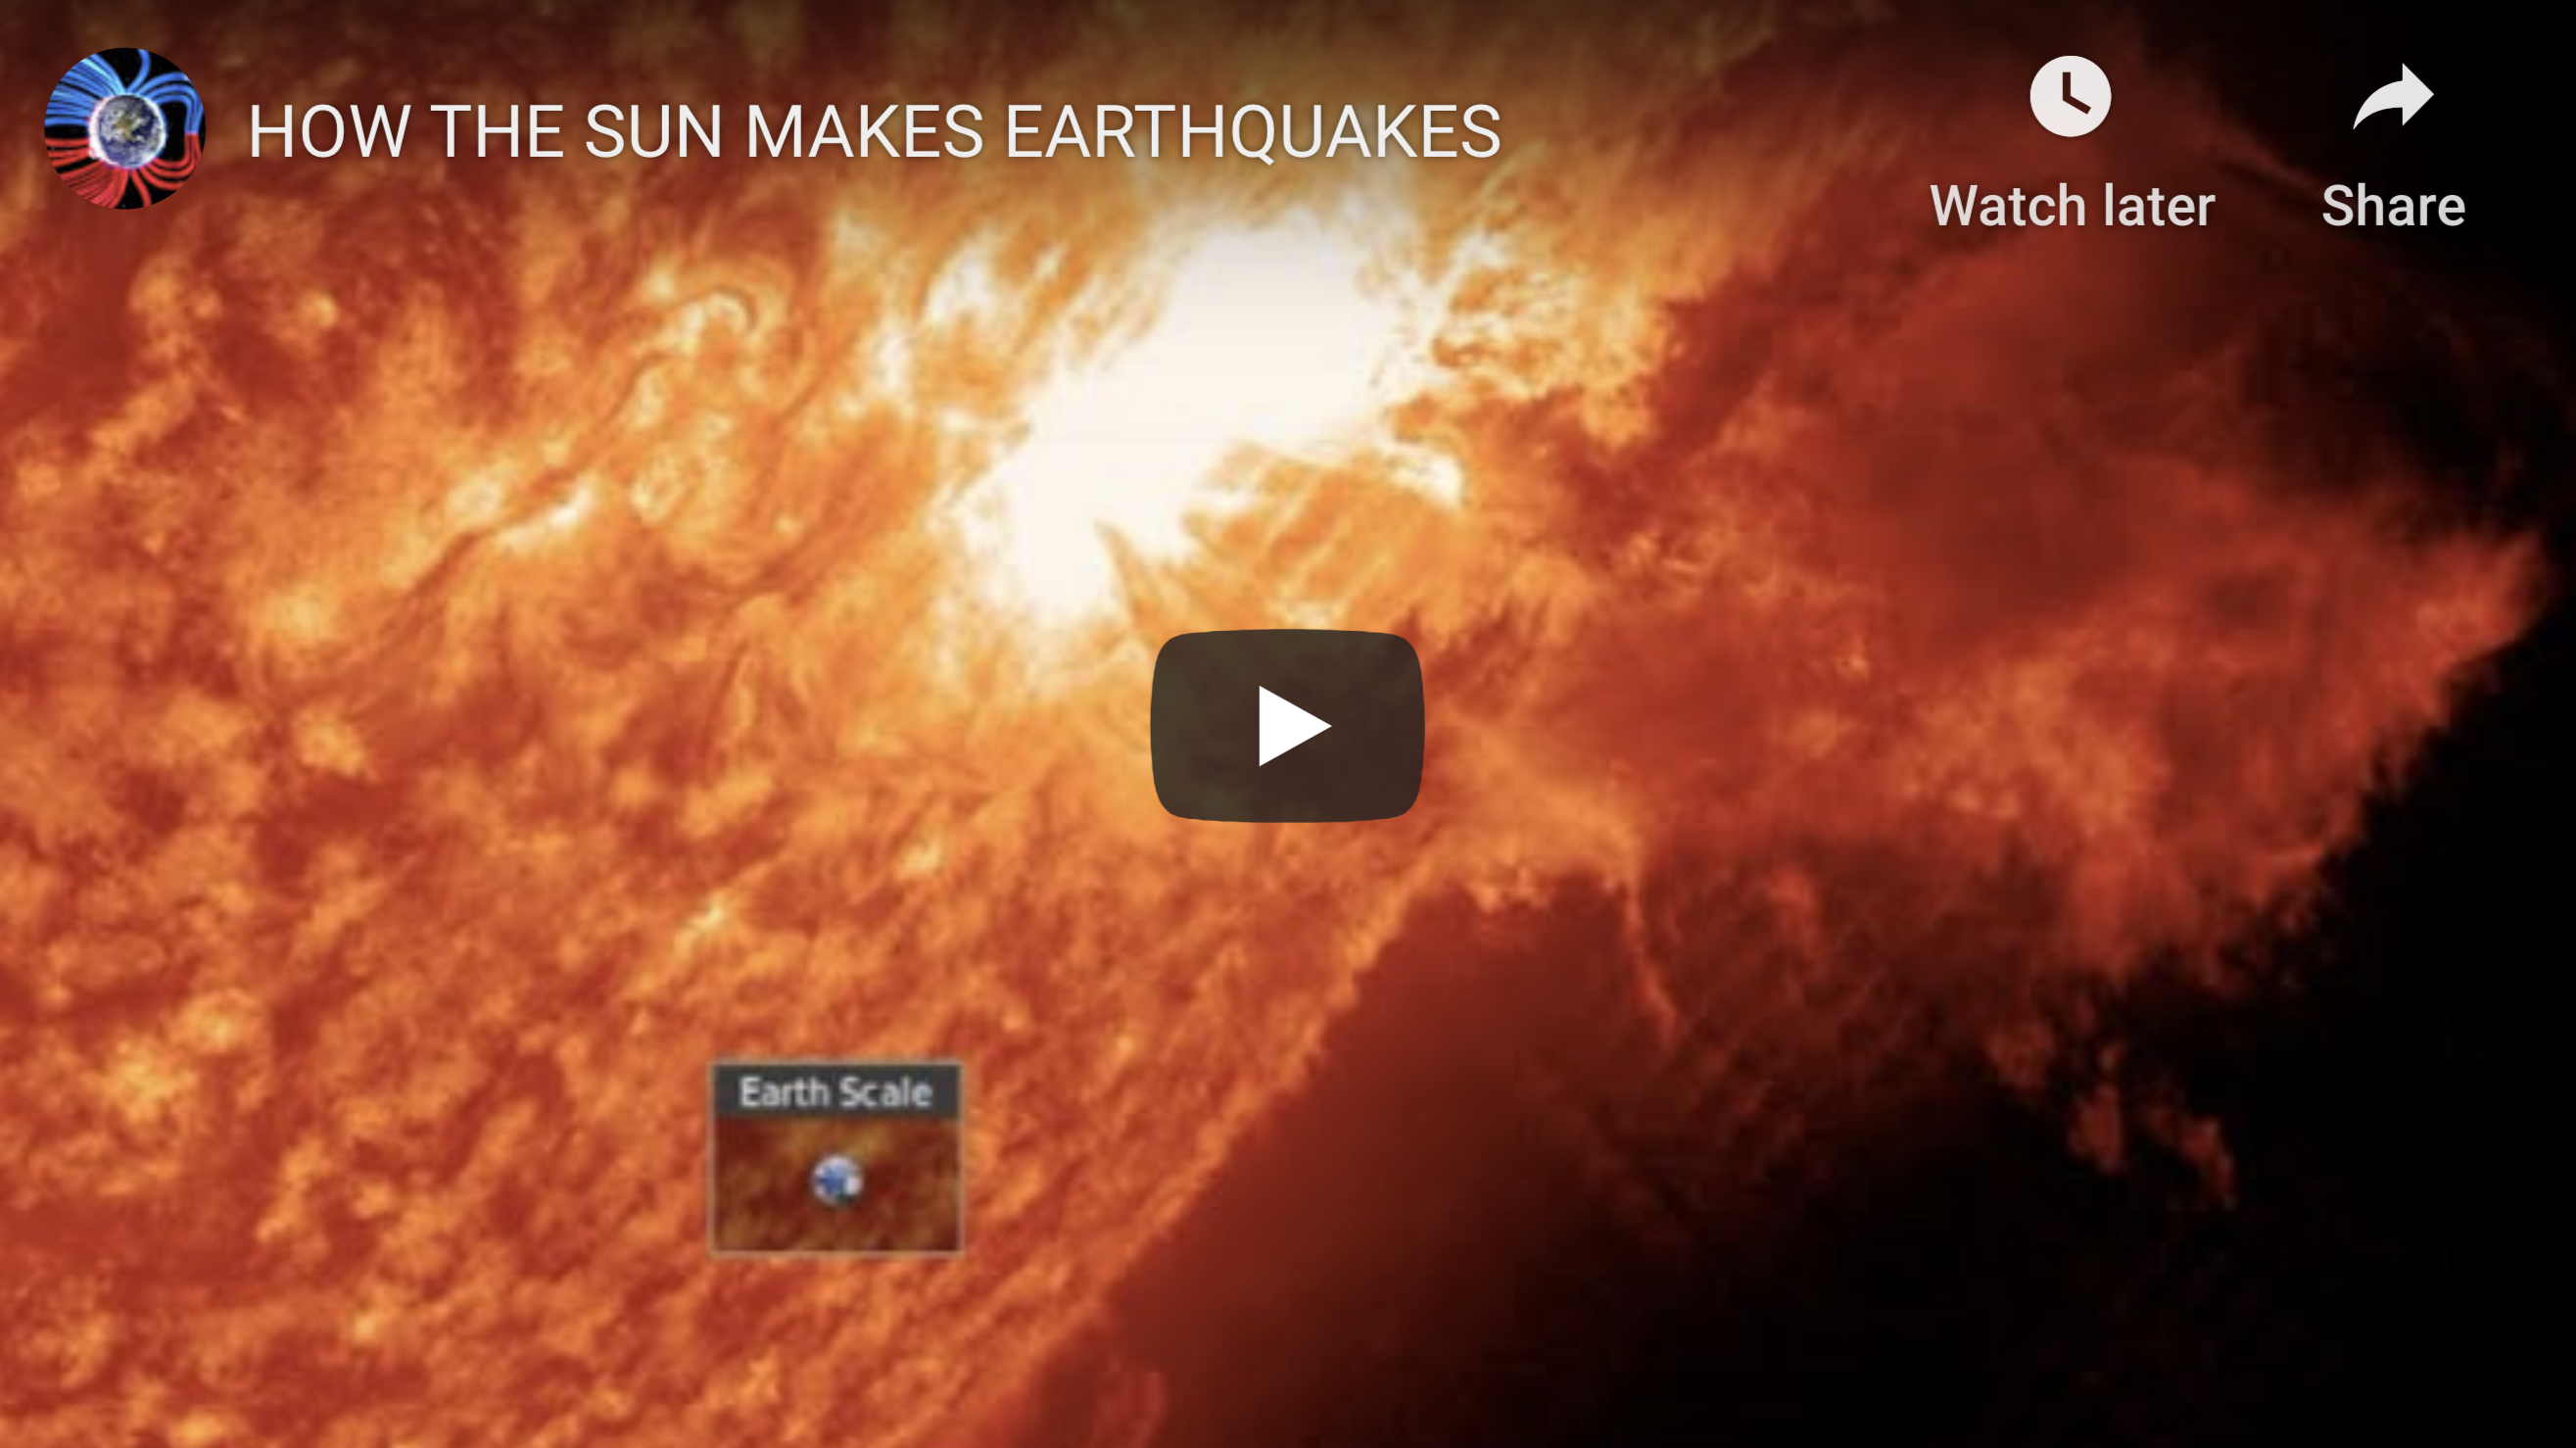 HOW THE SUN MAKES EARTHQUAKES EXZM Suspicious Observers post July 27th 2020